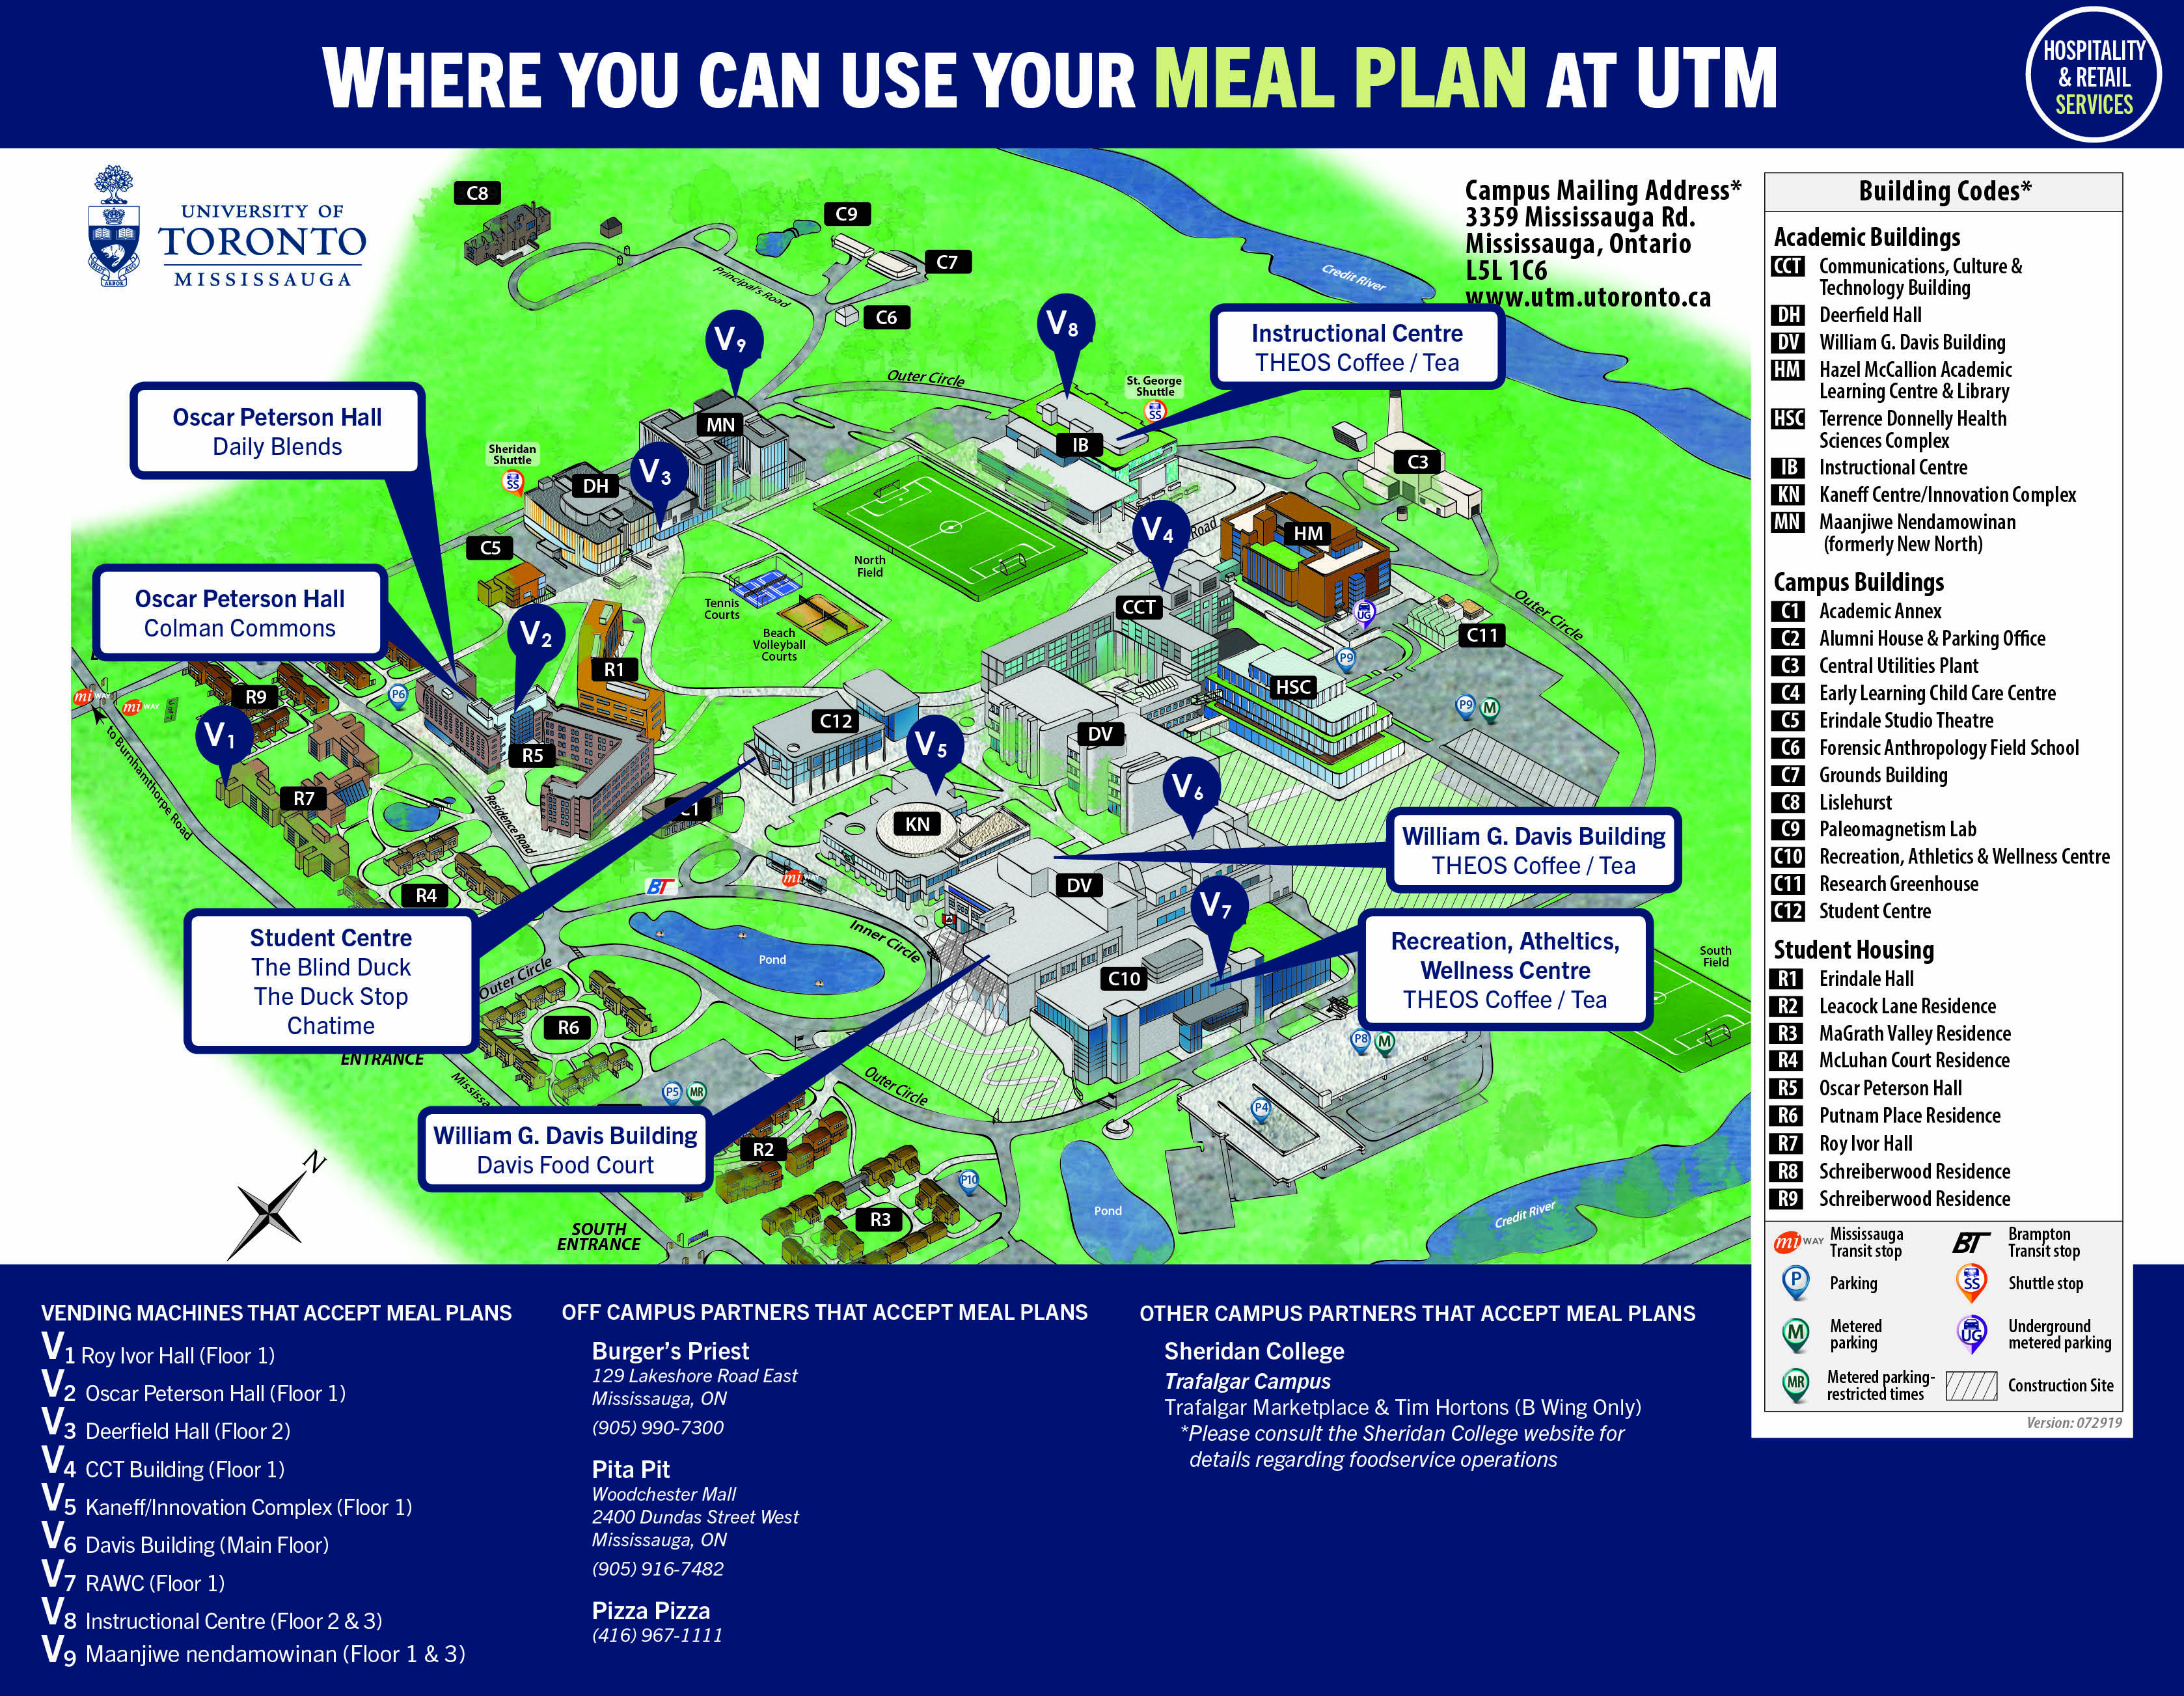 Where to dine on campus